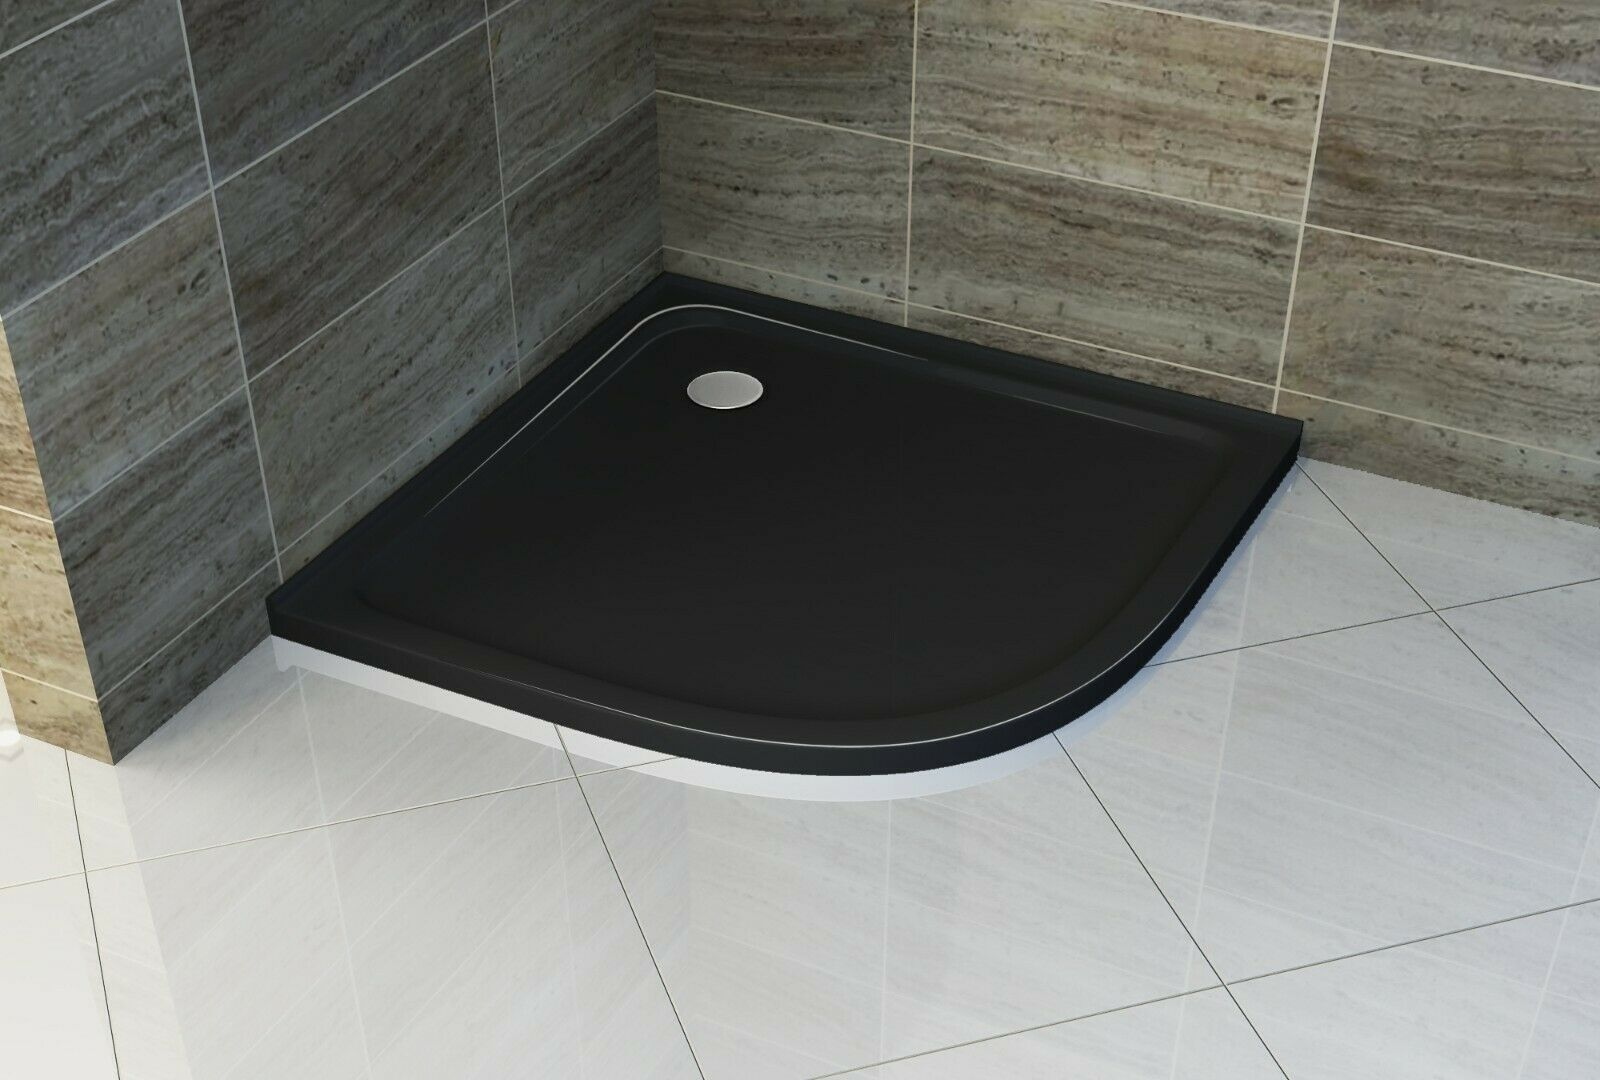 BLACK CURVED 900X900mm SHOWER BASE **Free Delivery**